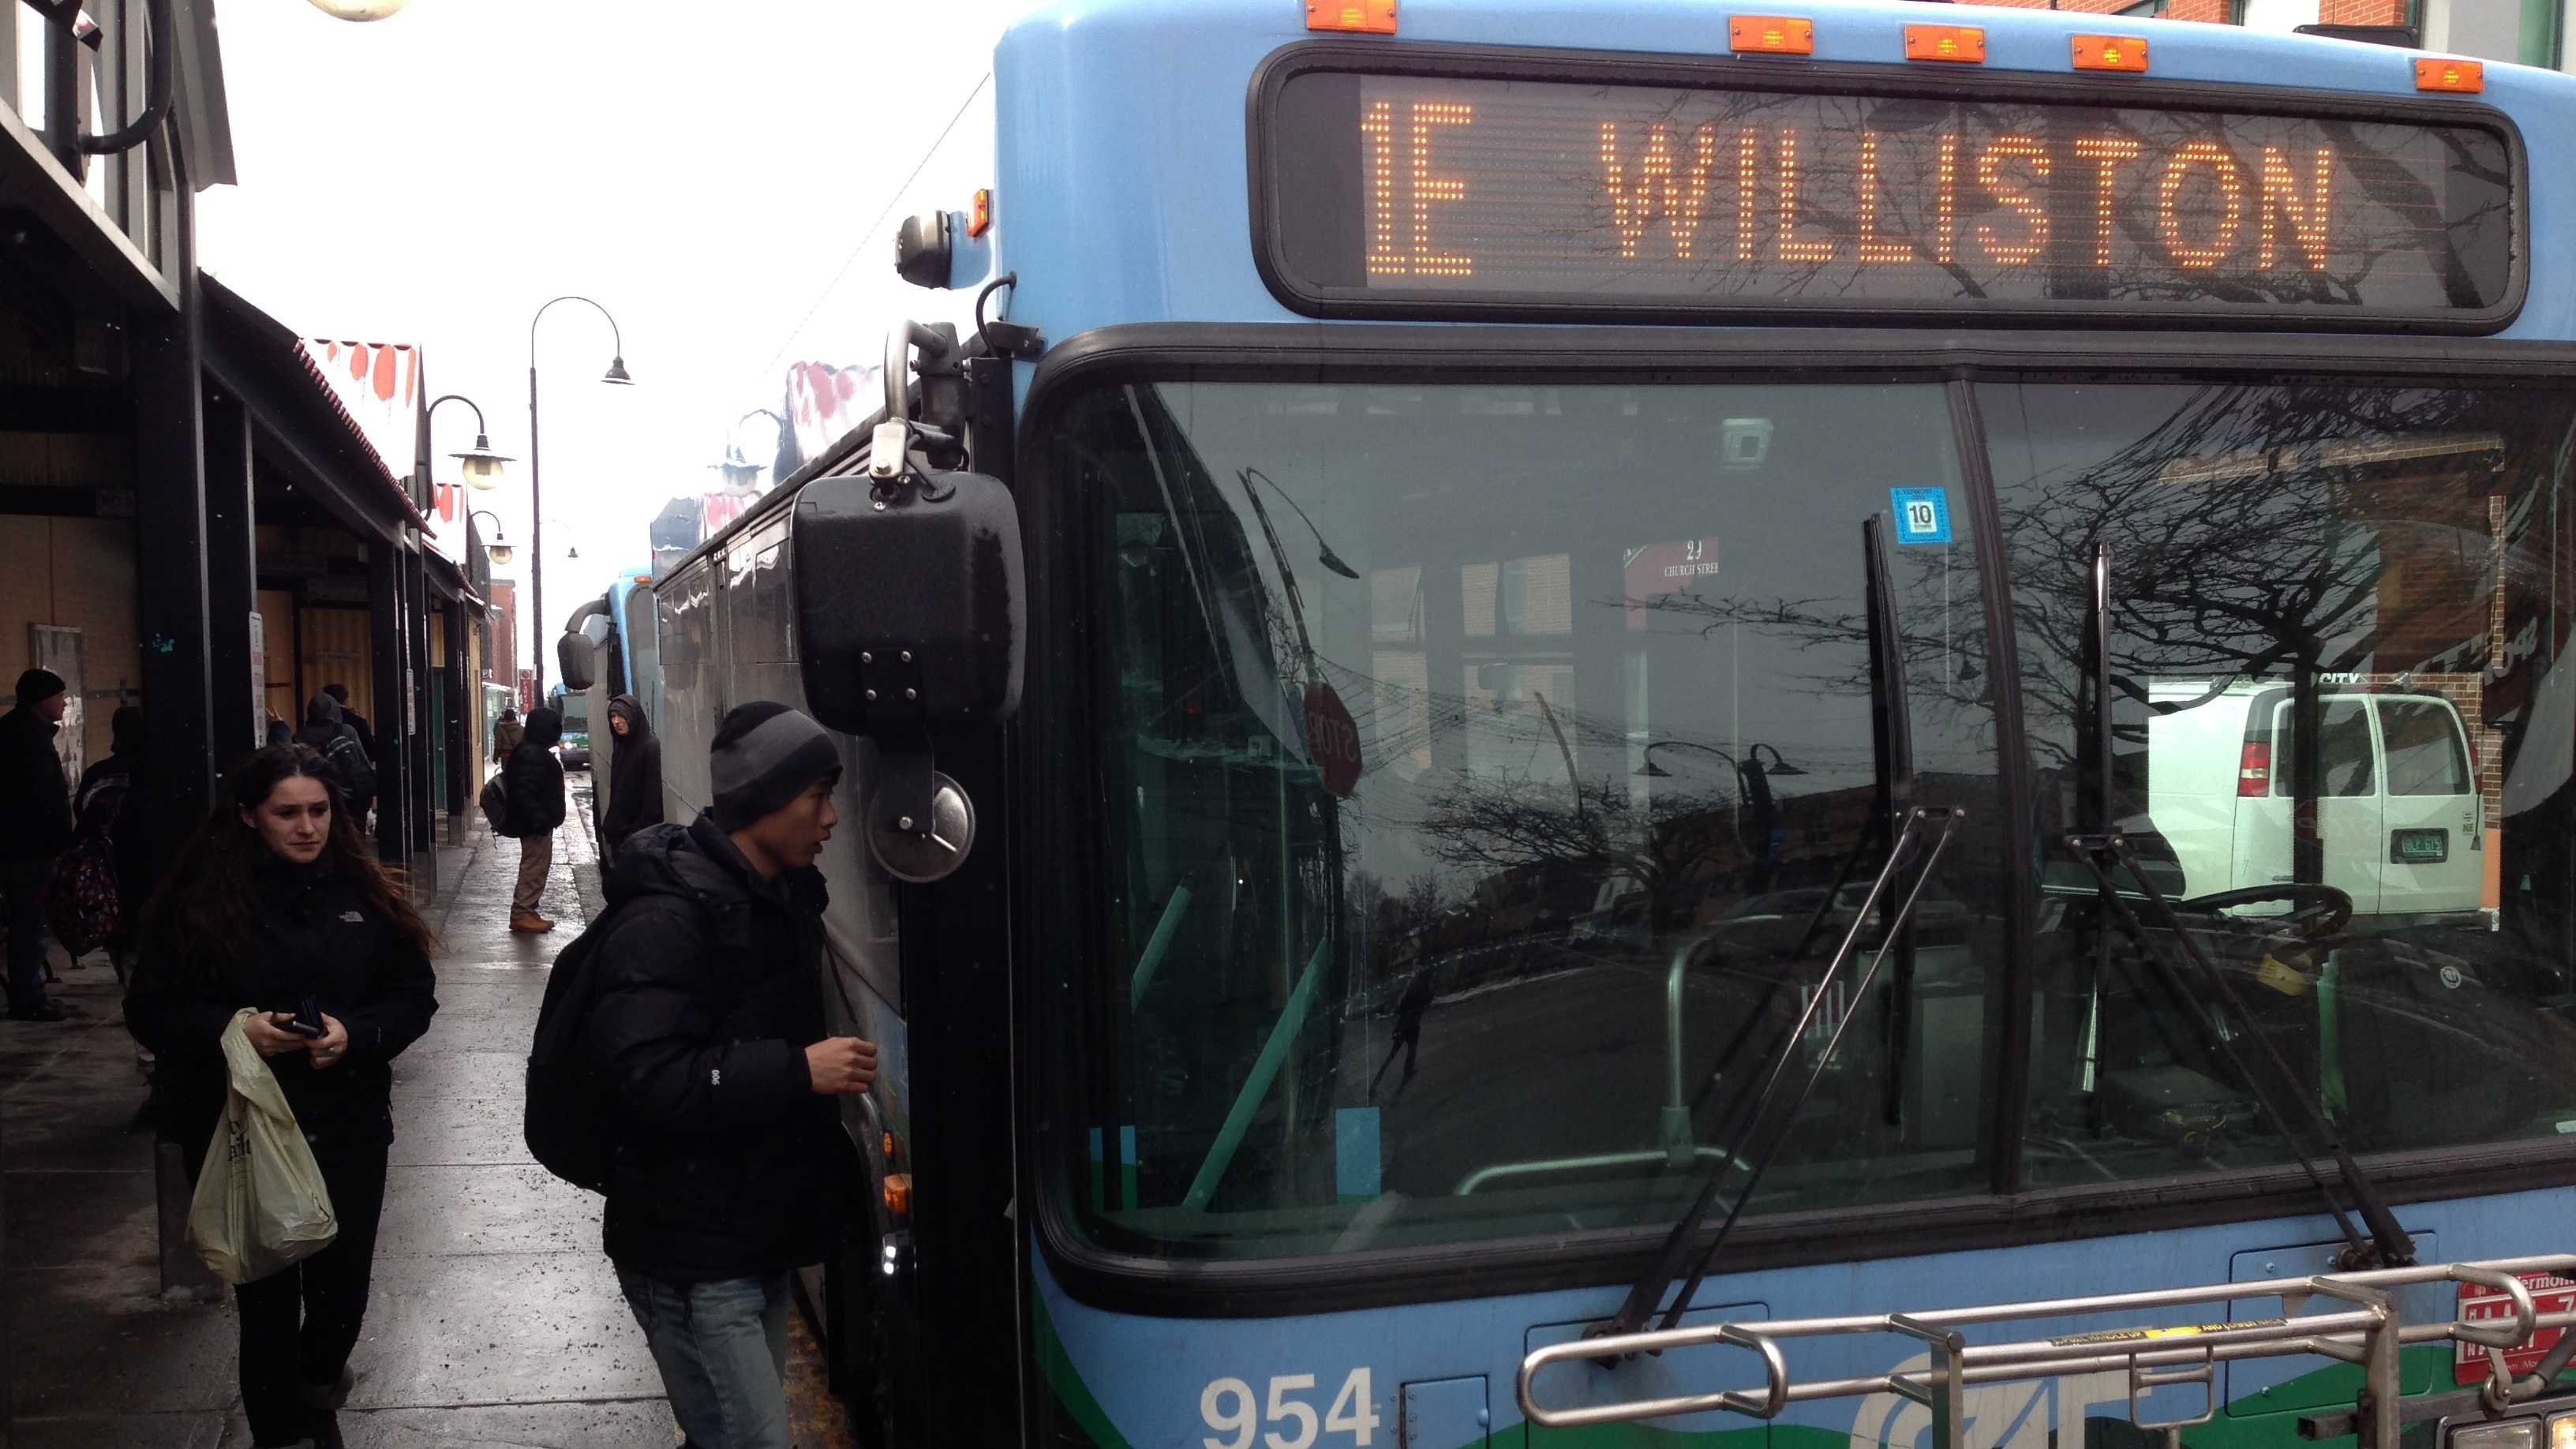 Ten thousand passsangers ride the CCTA each weekday, many use the Cherry St. station in downtown Burlington.